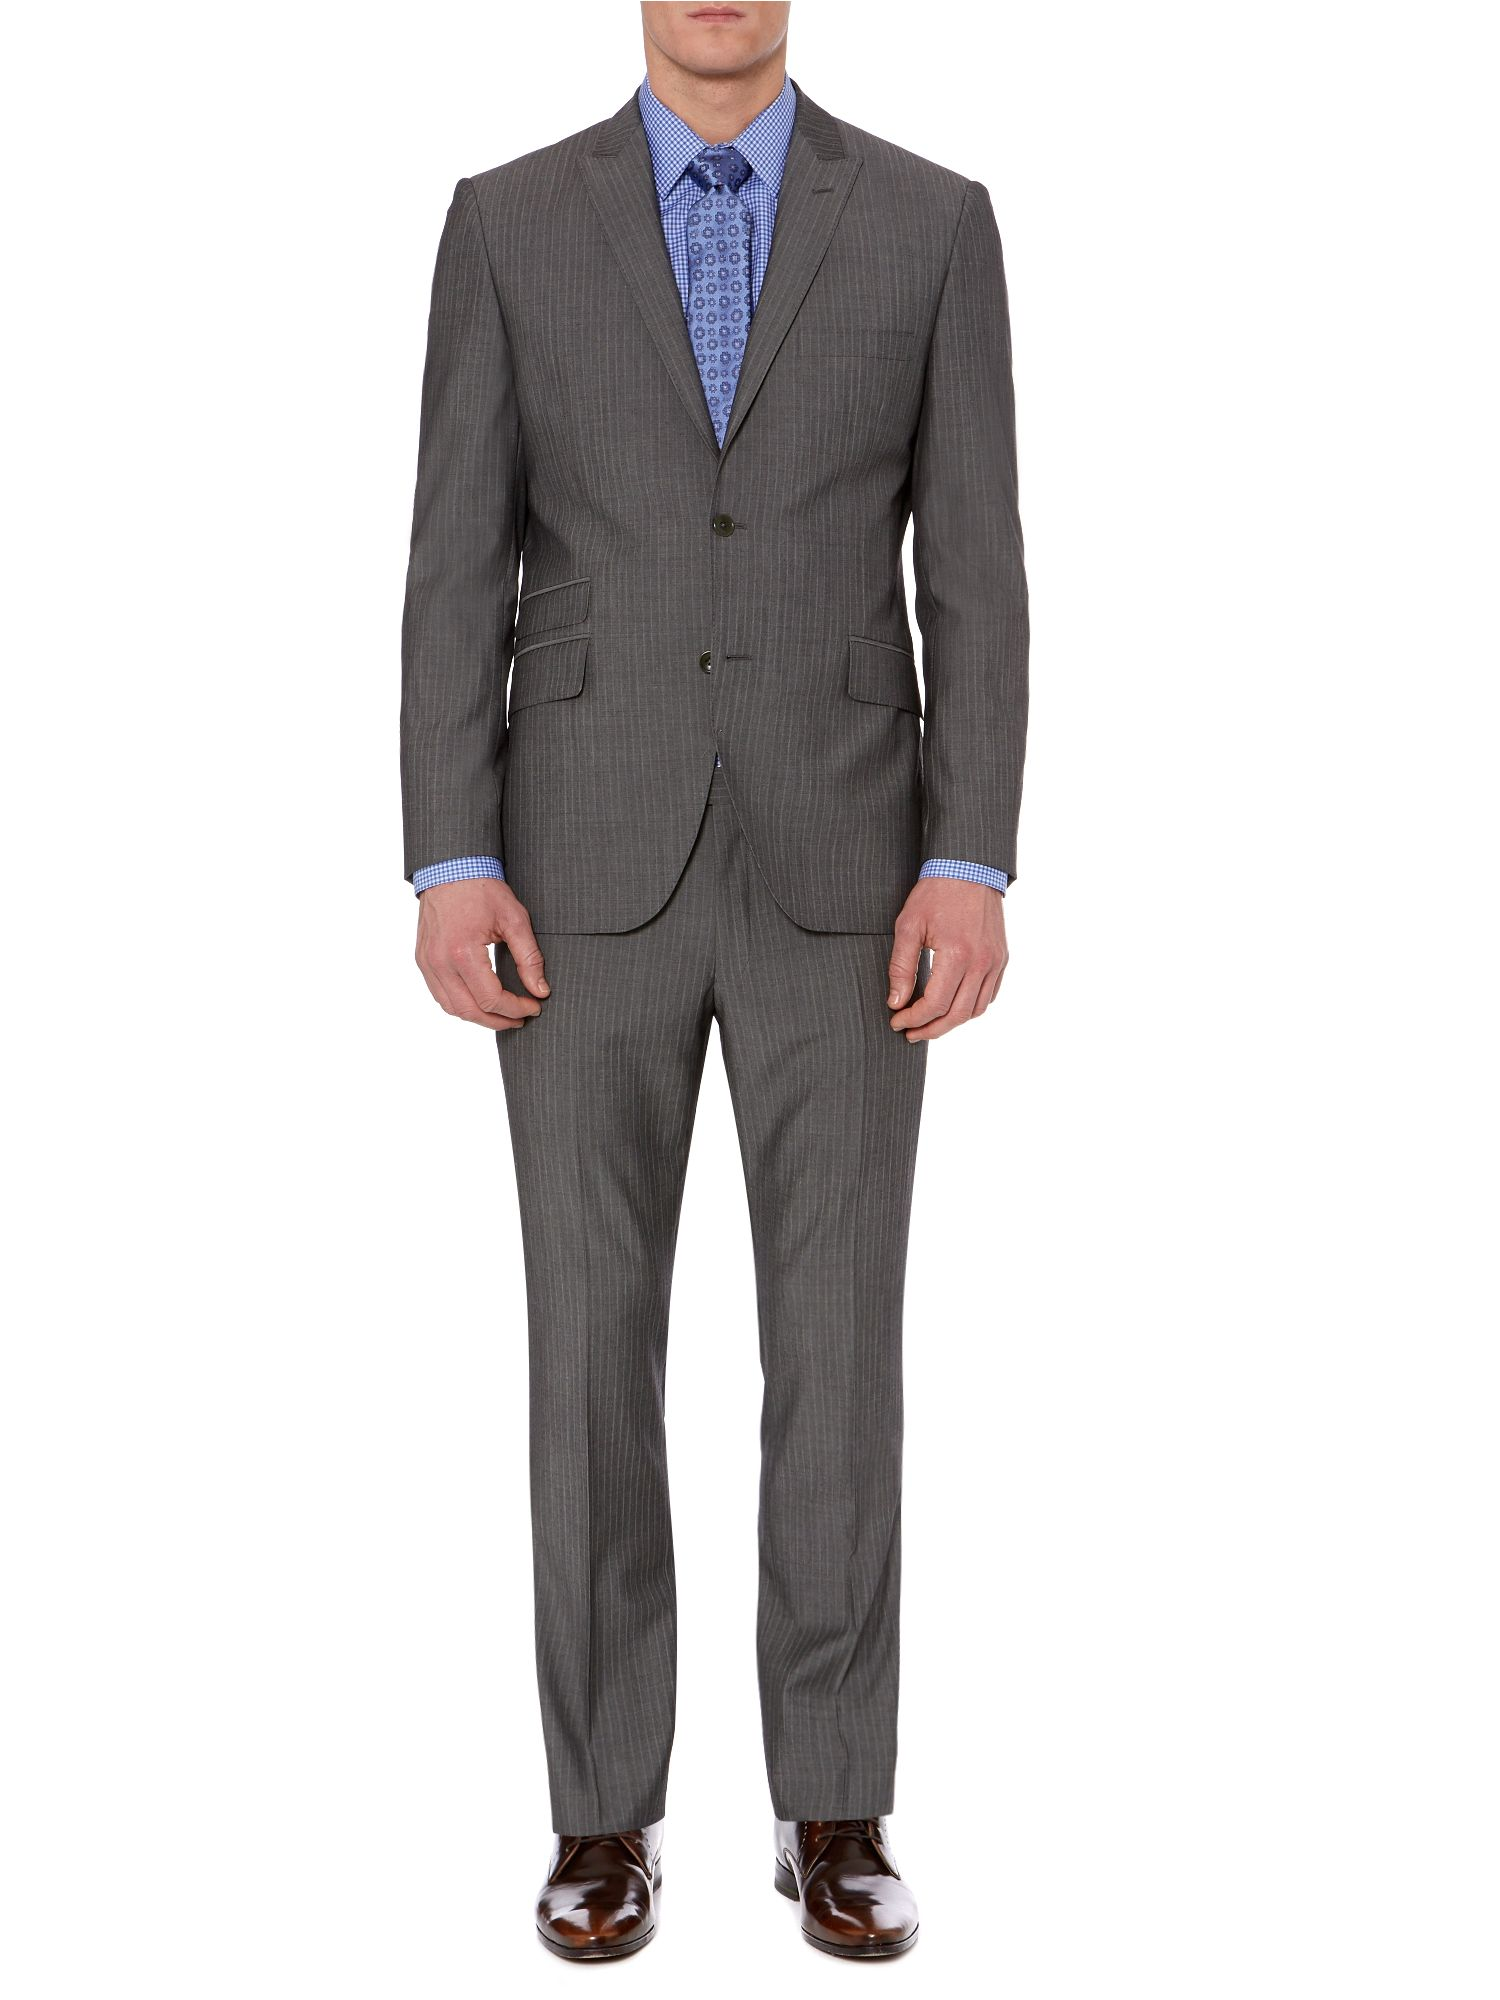 Nure panama soft stripe suit jacket